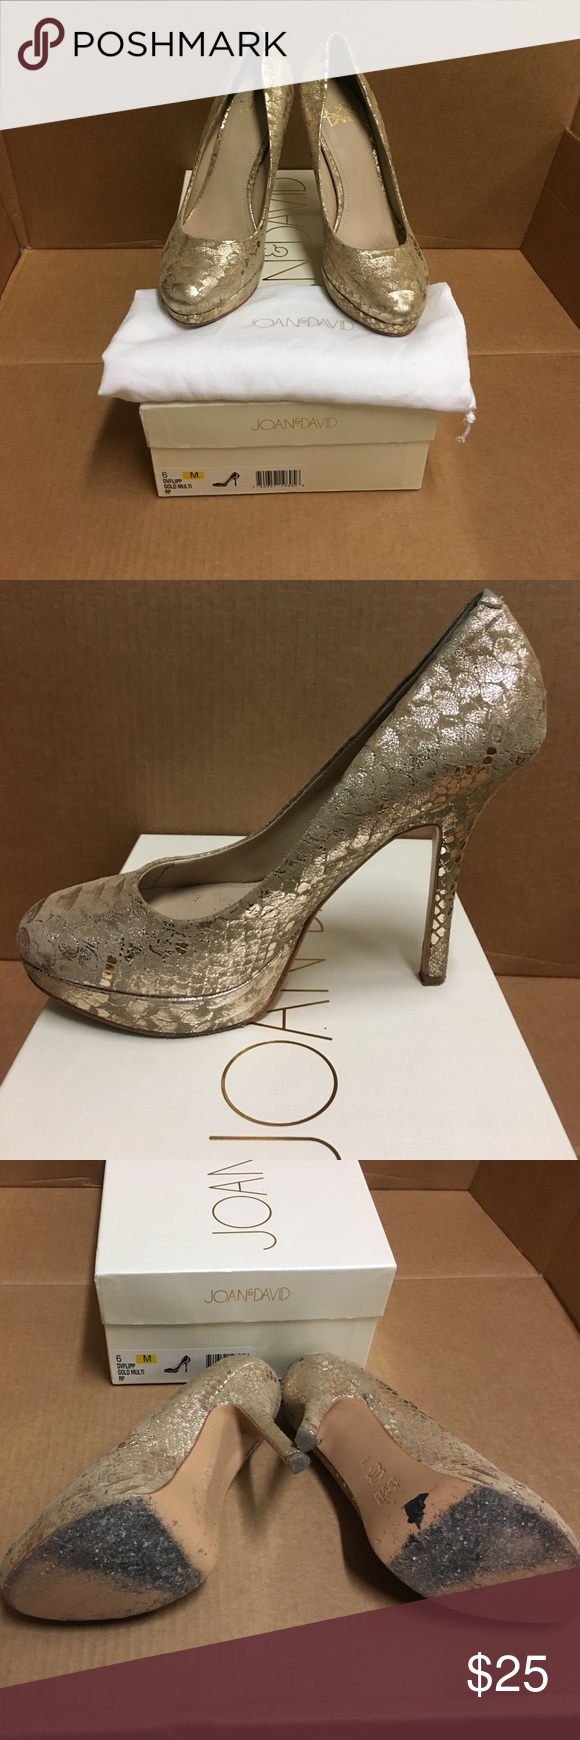 Shoes Great pumps for any day or night! Gold platform pumps that are in good condition and only wear is on the bottom! Will be cleaned before shipping. Includes original box and dust bag. Pet and smoke free home Joan & David Shoes